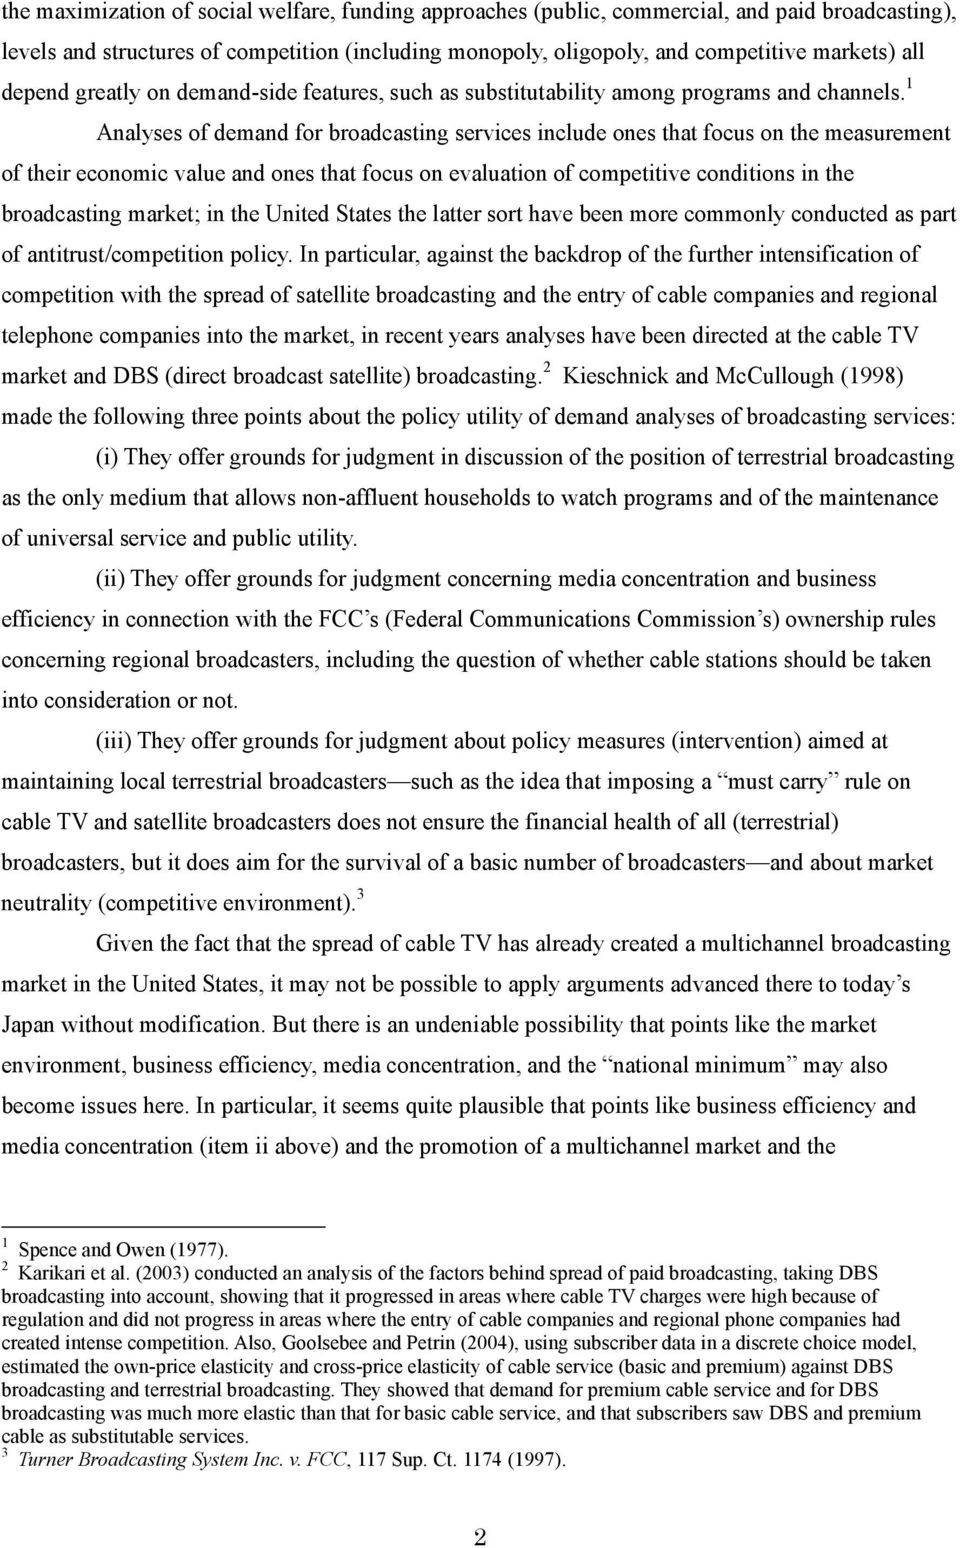 1 Analyses of demand for broadcastng servces nclude ones that focus on the measurement of ther economc value and ones that focus on evaluaton of compettve condtons n the broadcastng market; n the